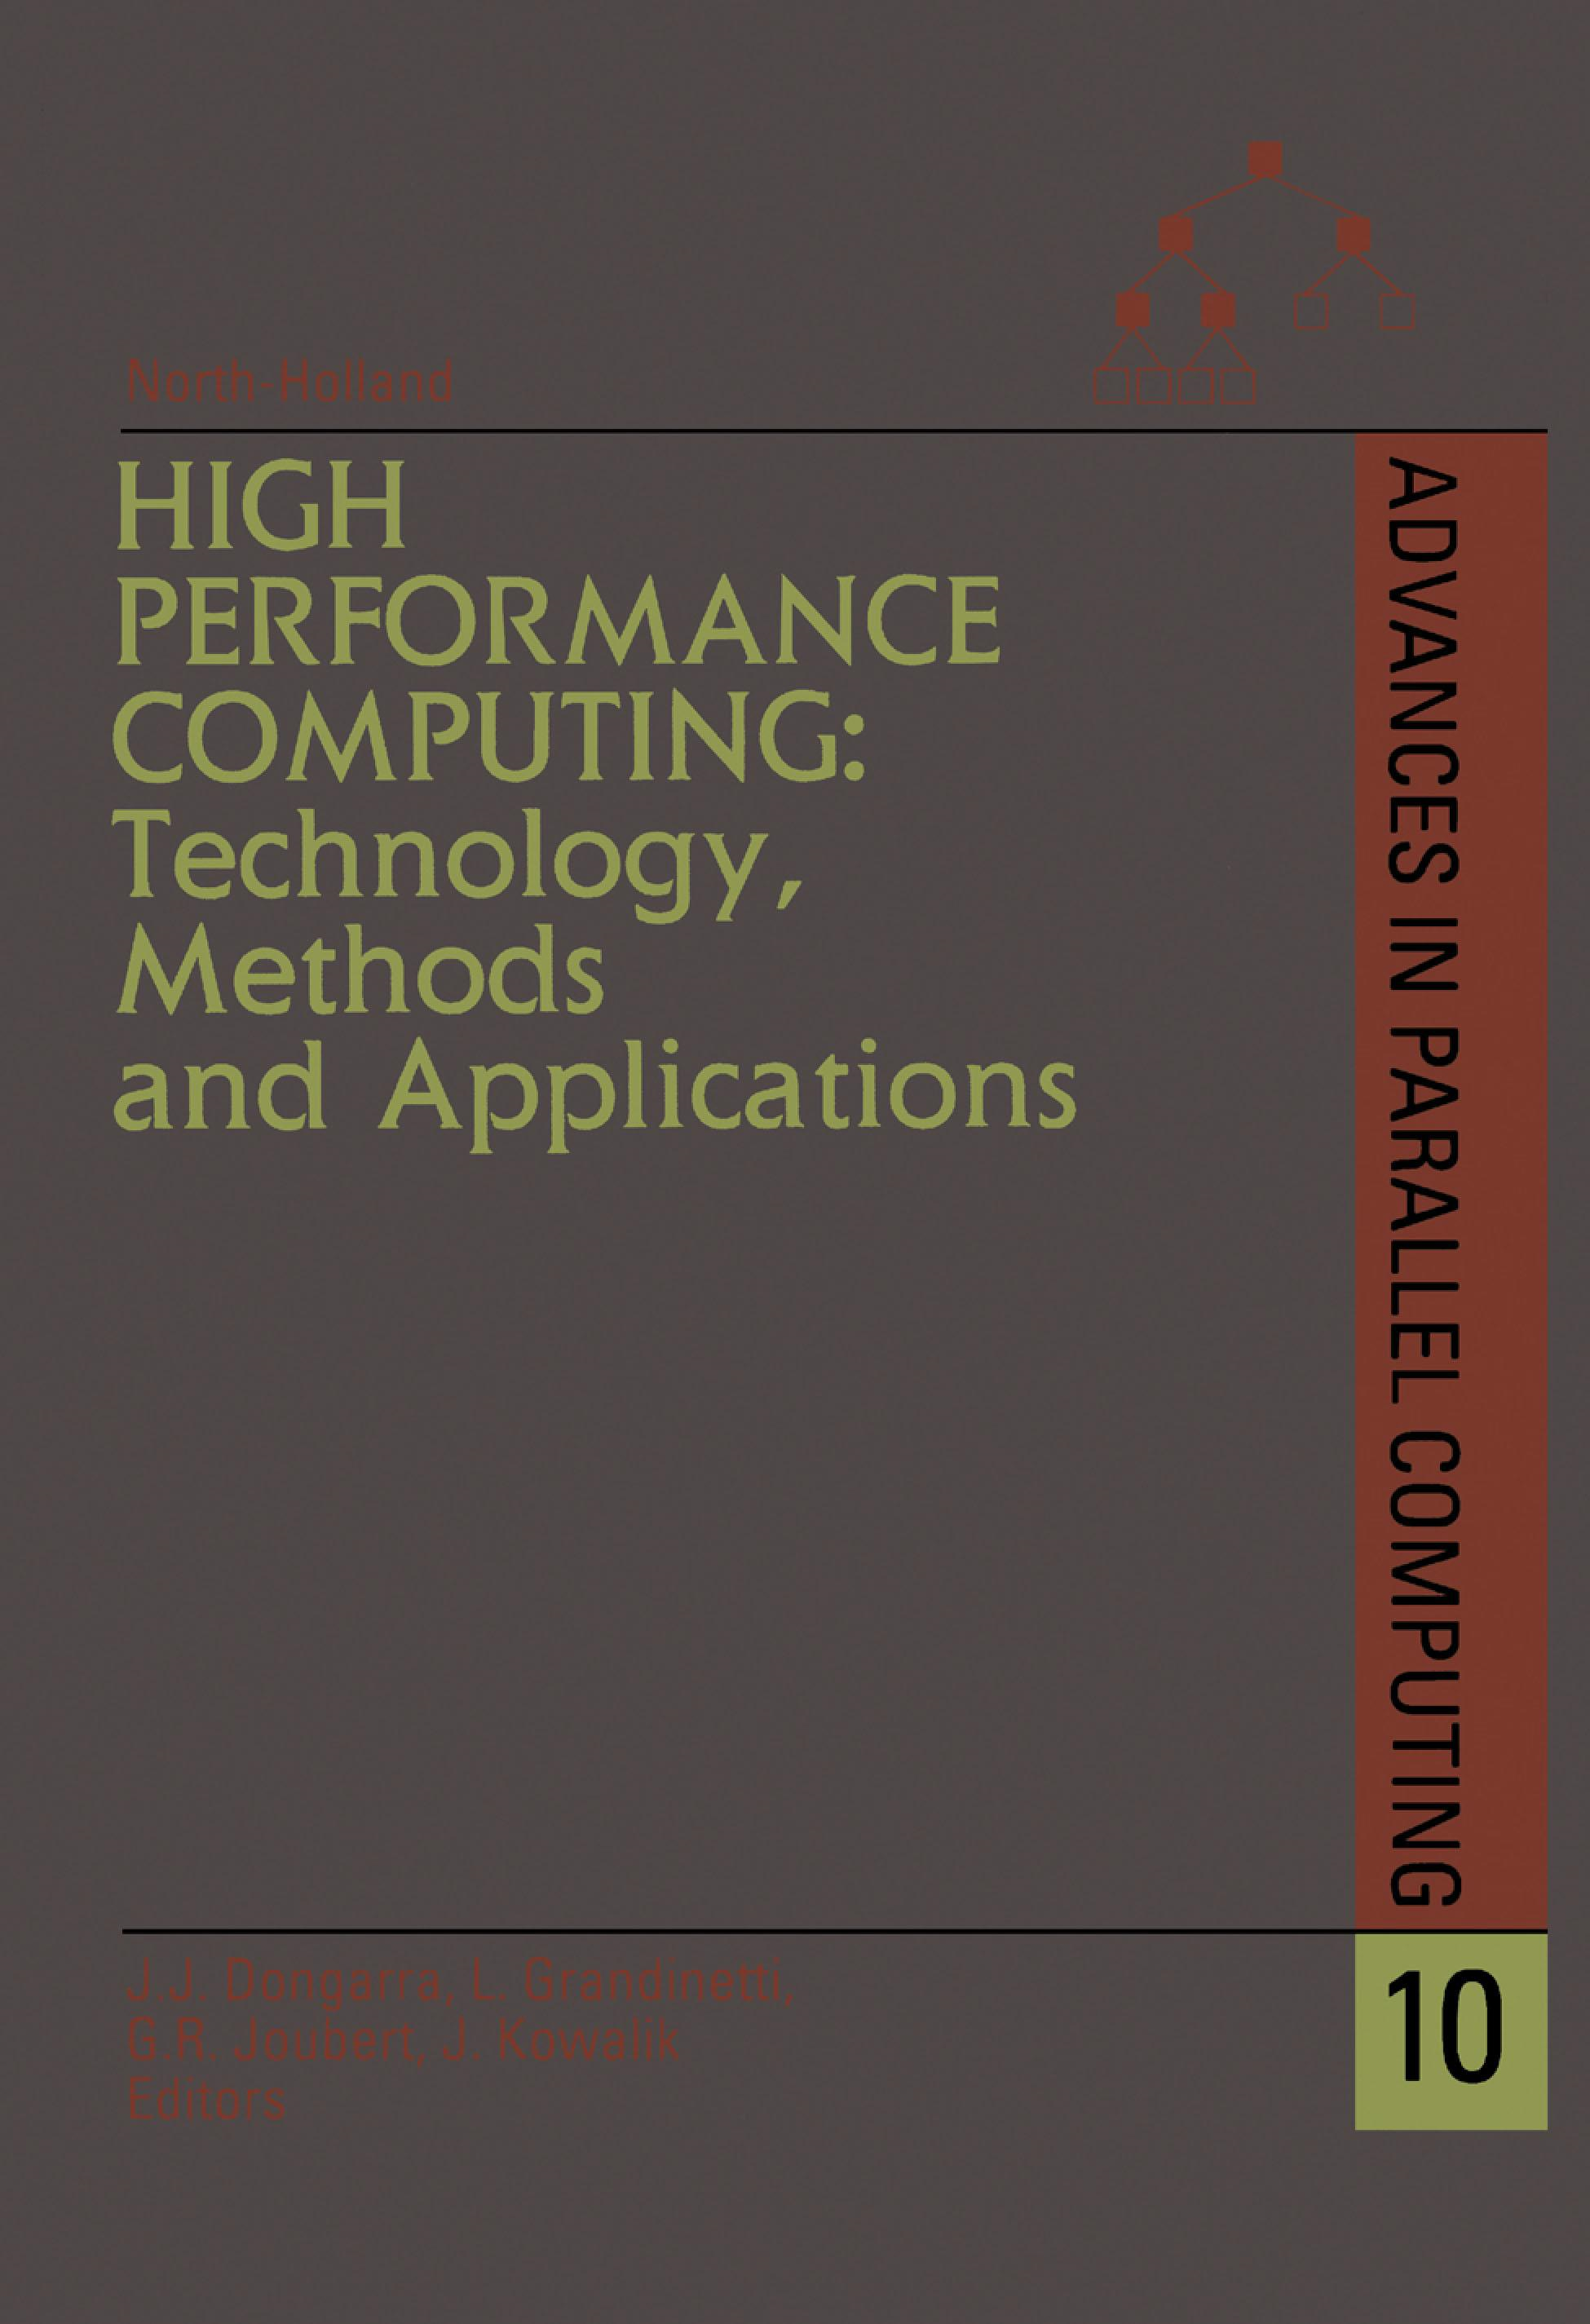 High Performance Computing: Technology, Methods and Applications: Technology, Methods and Applications